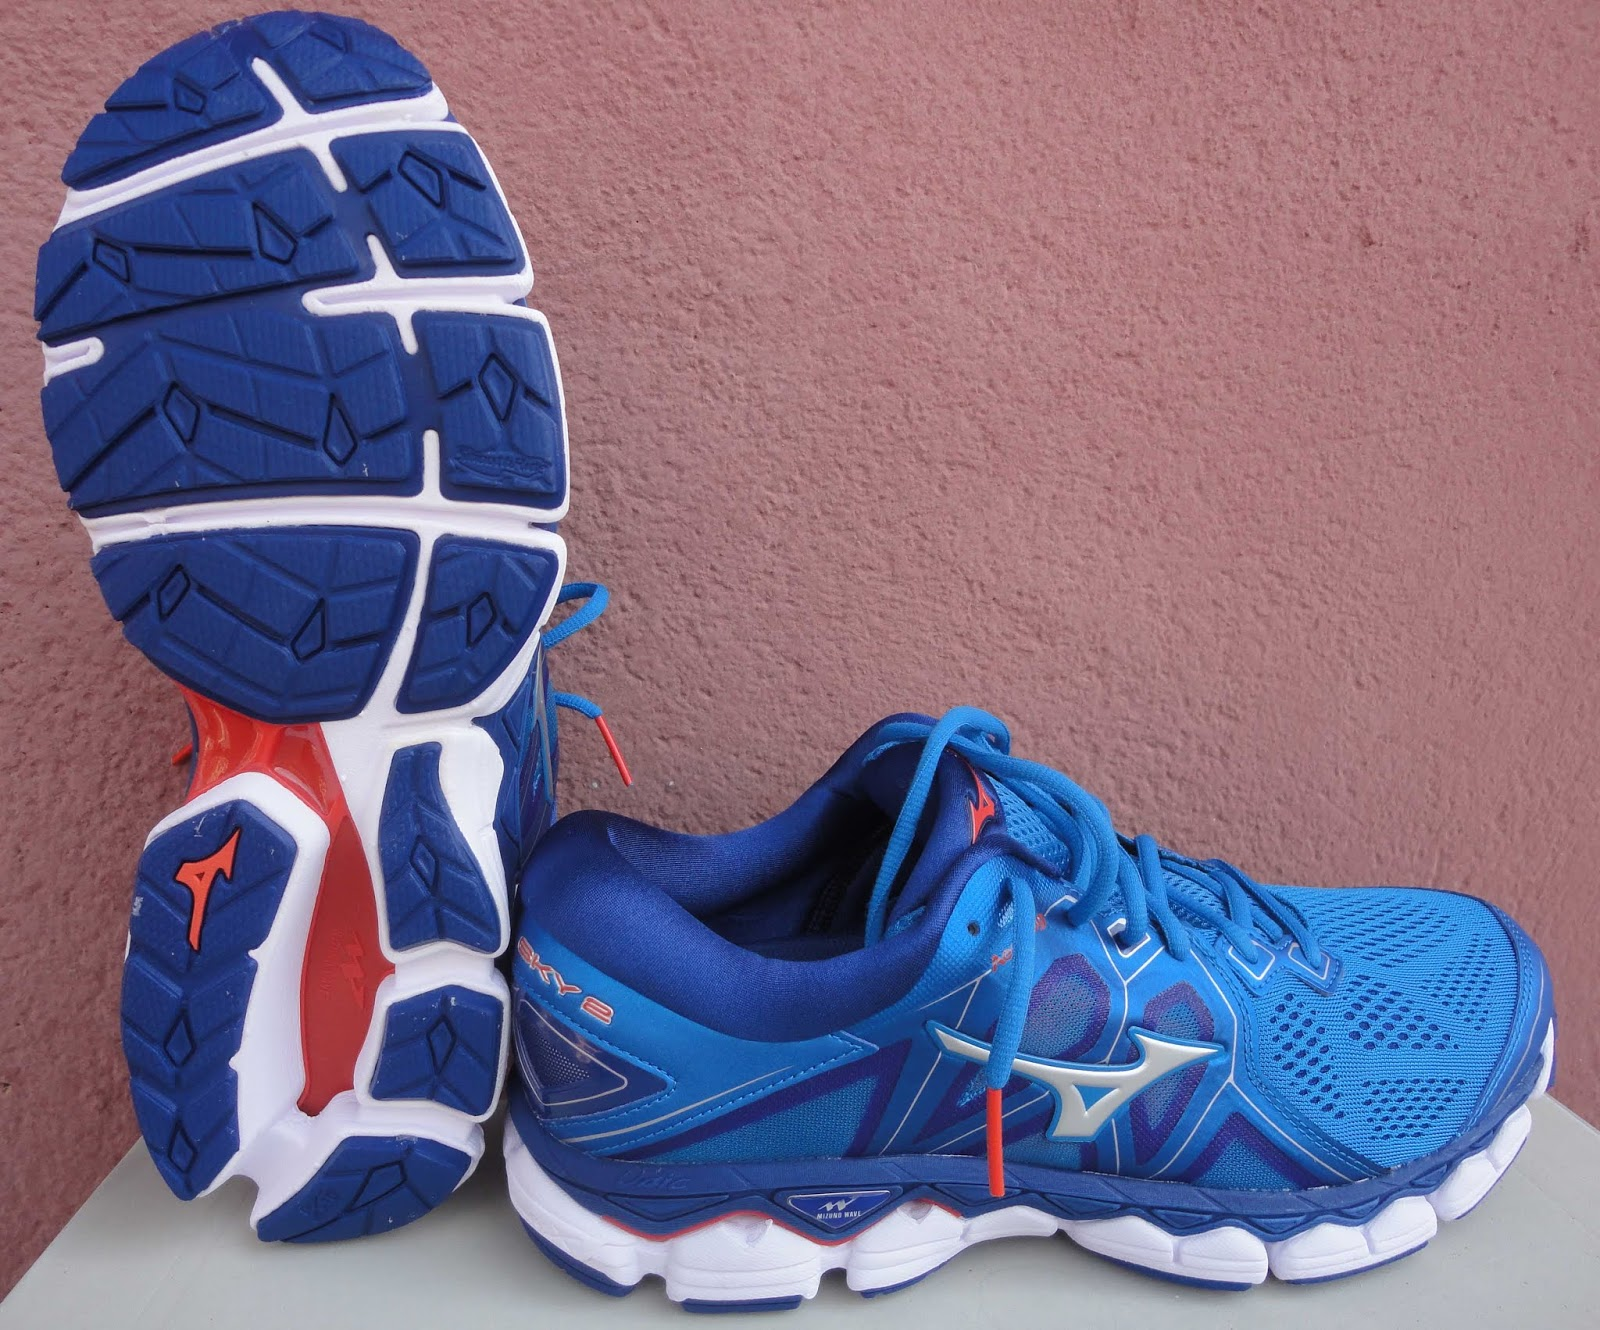 129a73fedbde Filippo Running and Much More: Mizuno Wave Sky 2 - Un Grande Balzo ...